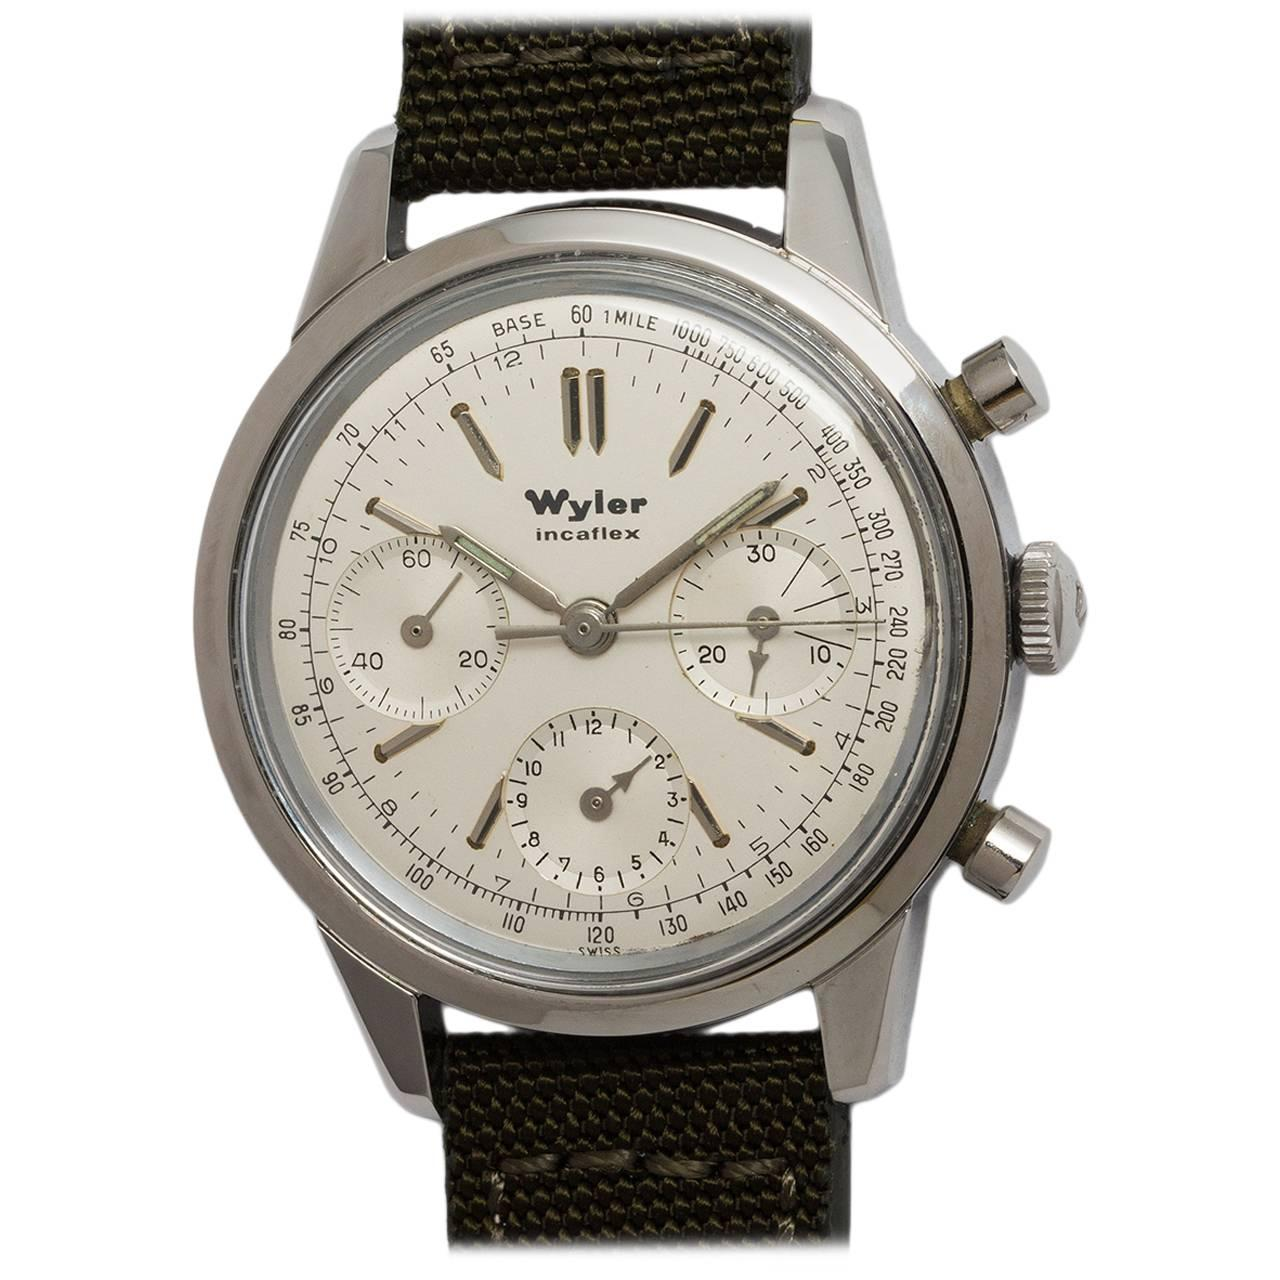 Wyler replica watches - Classic Wyler Watches